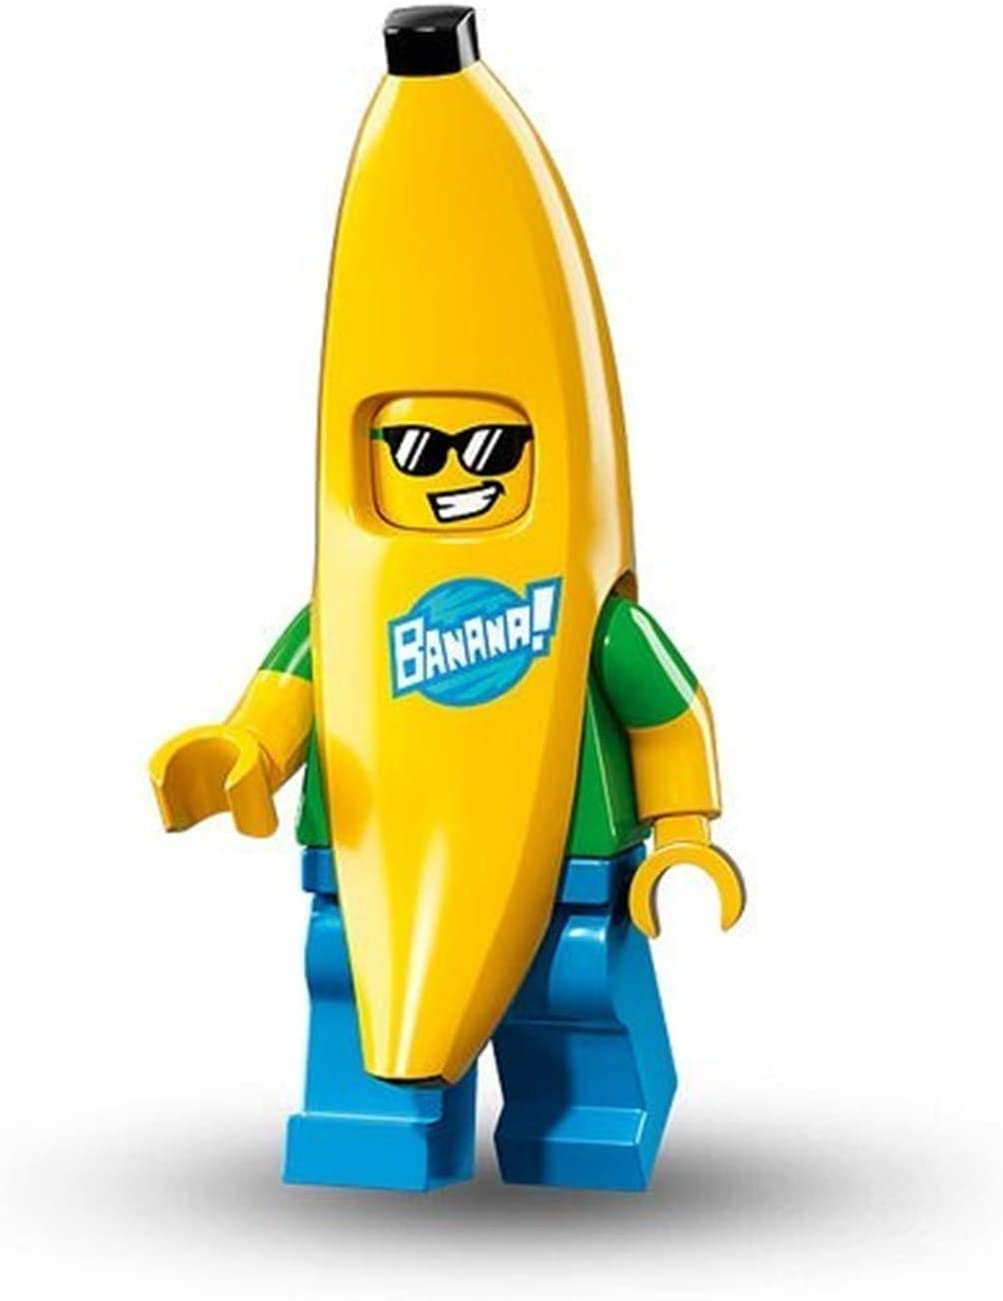 LEGO Series 16 Collectible Minifigures - Banana Guy Suit (71013)